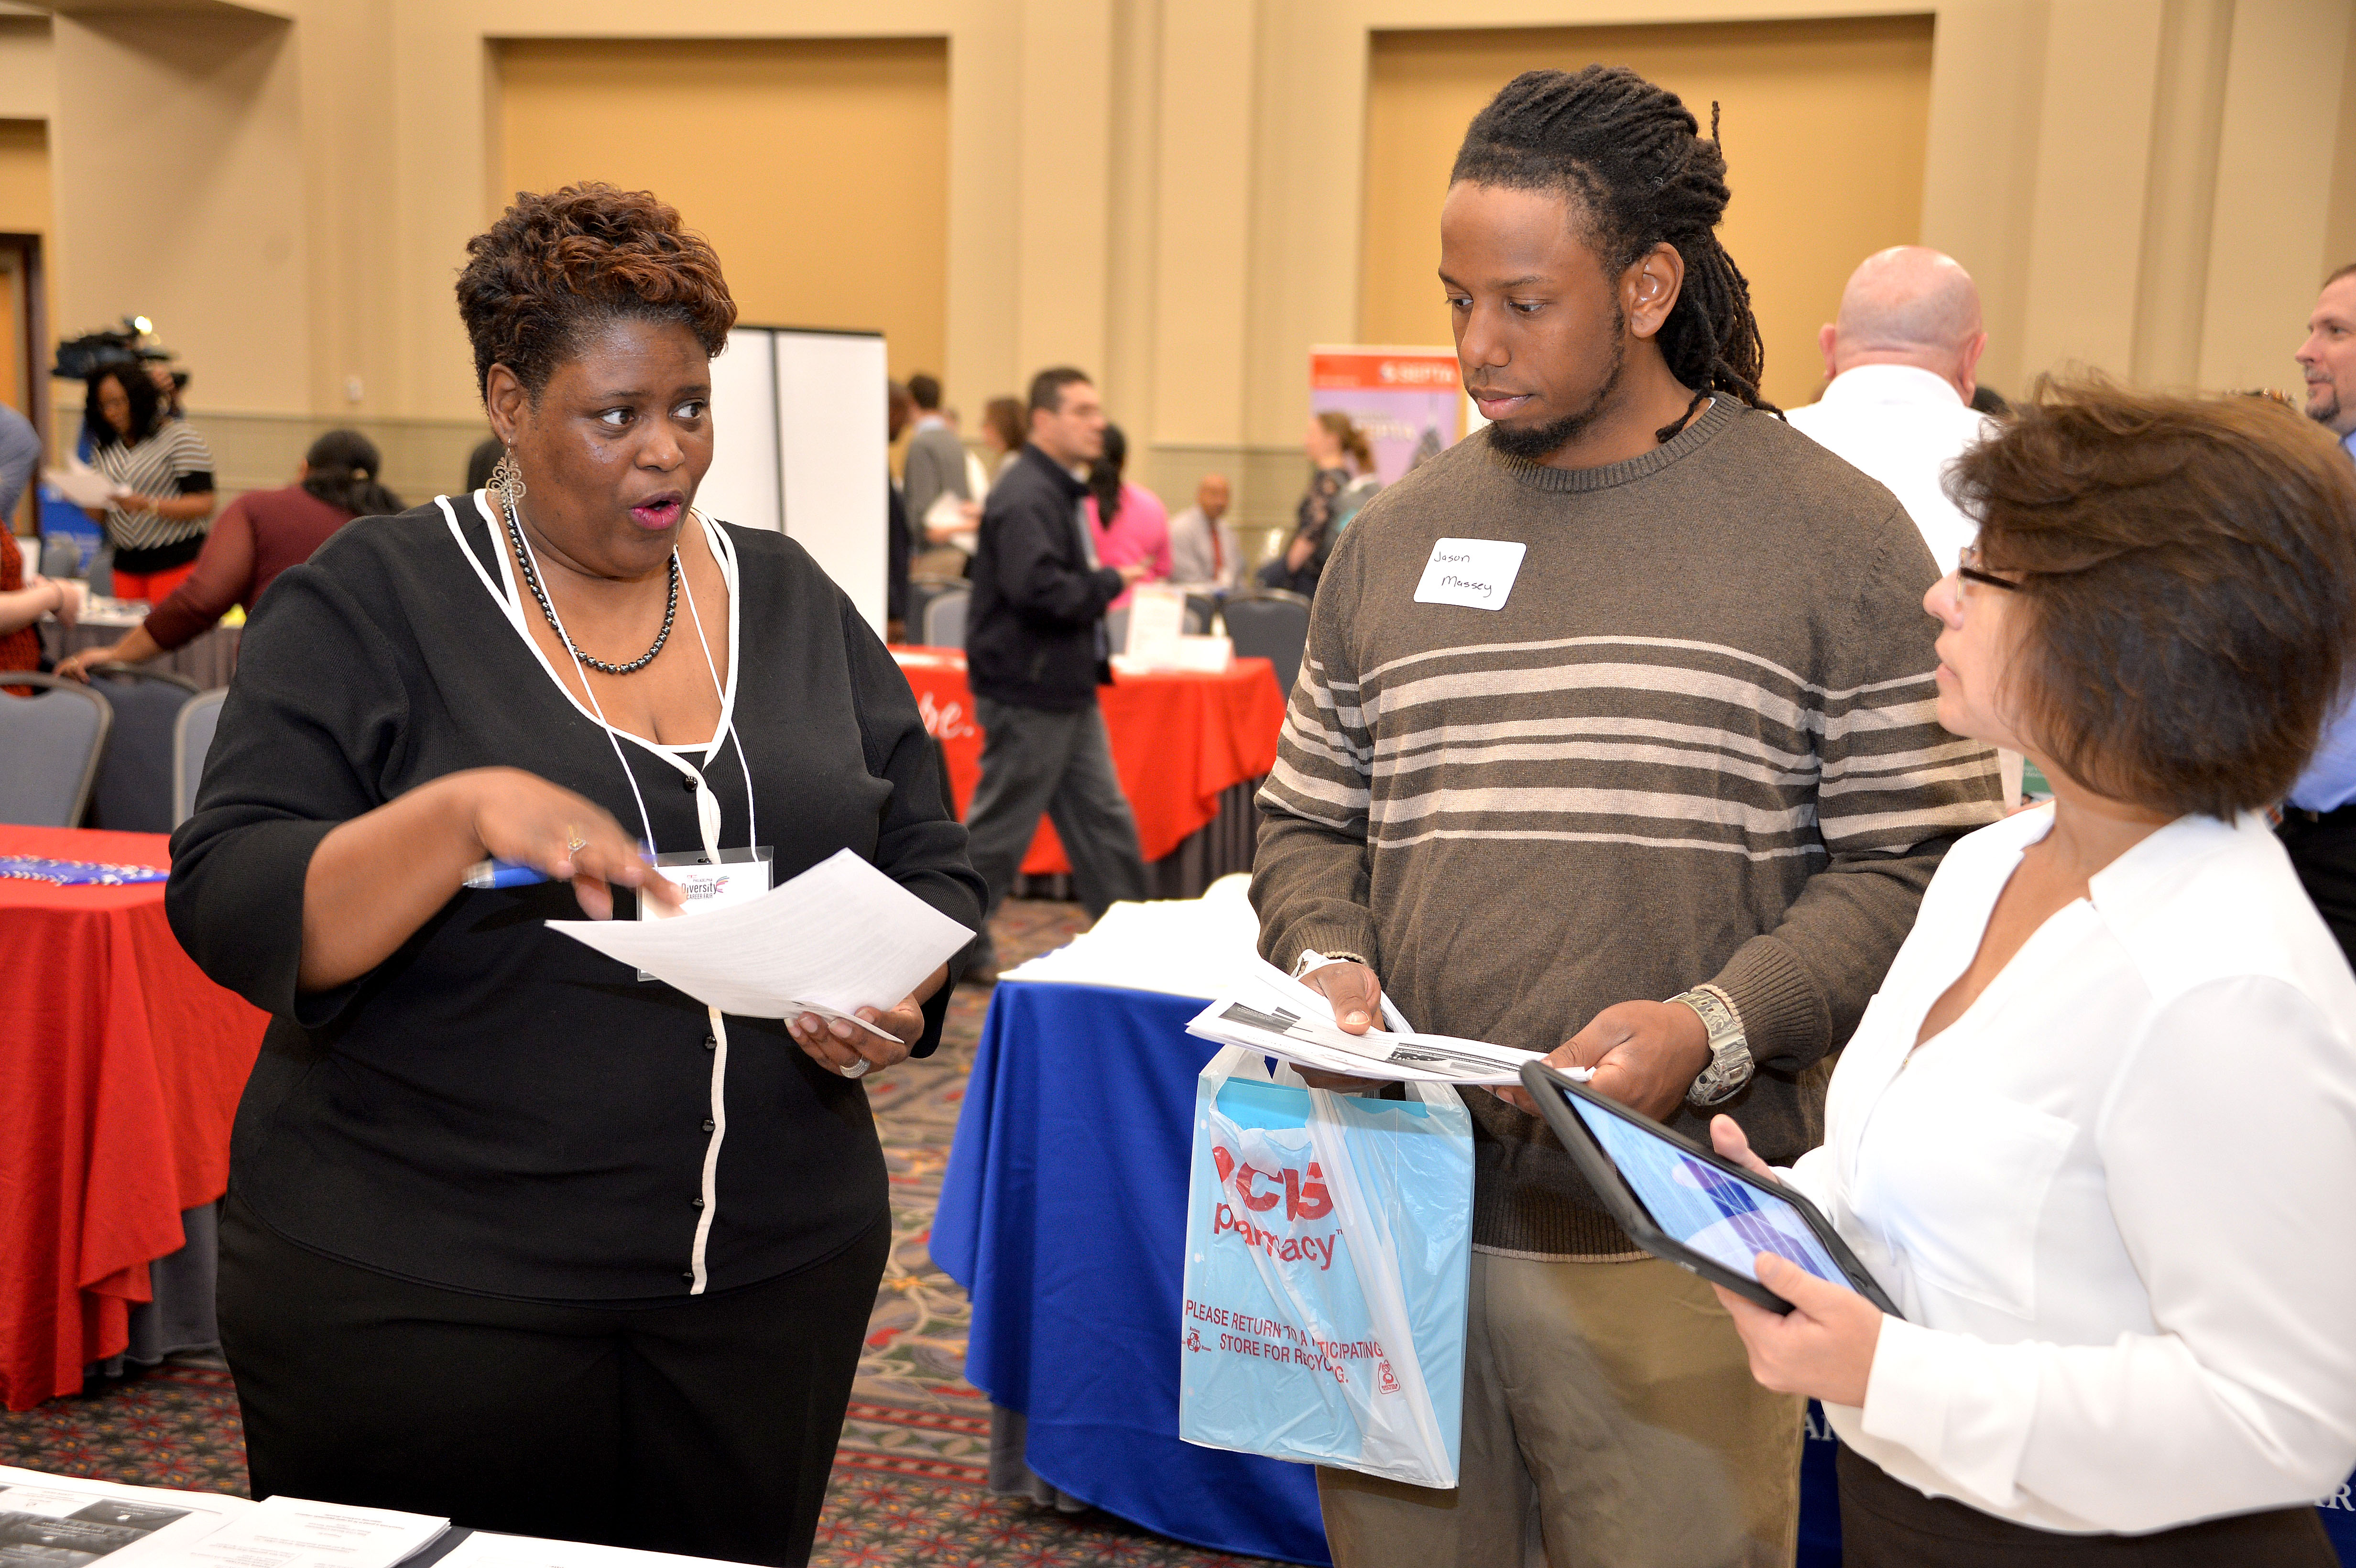 in search of the dream job al d iacute a news the philadelphia diversity career fair looks to improve opportunities for both individuals and employers photo